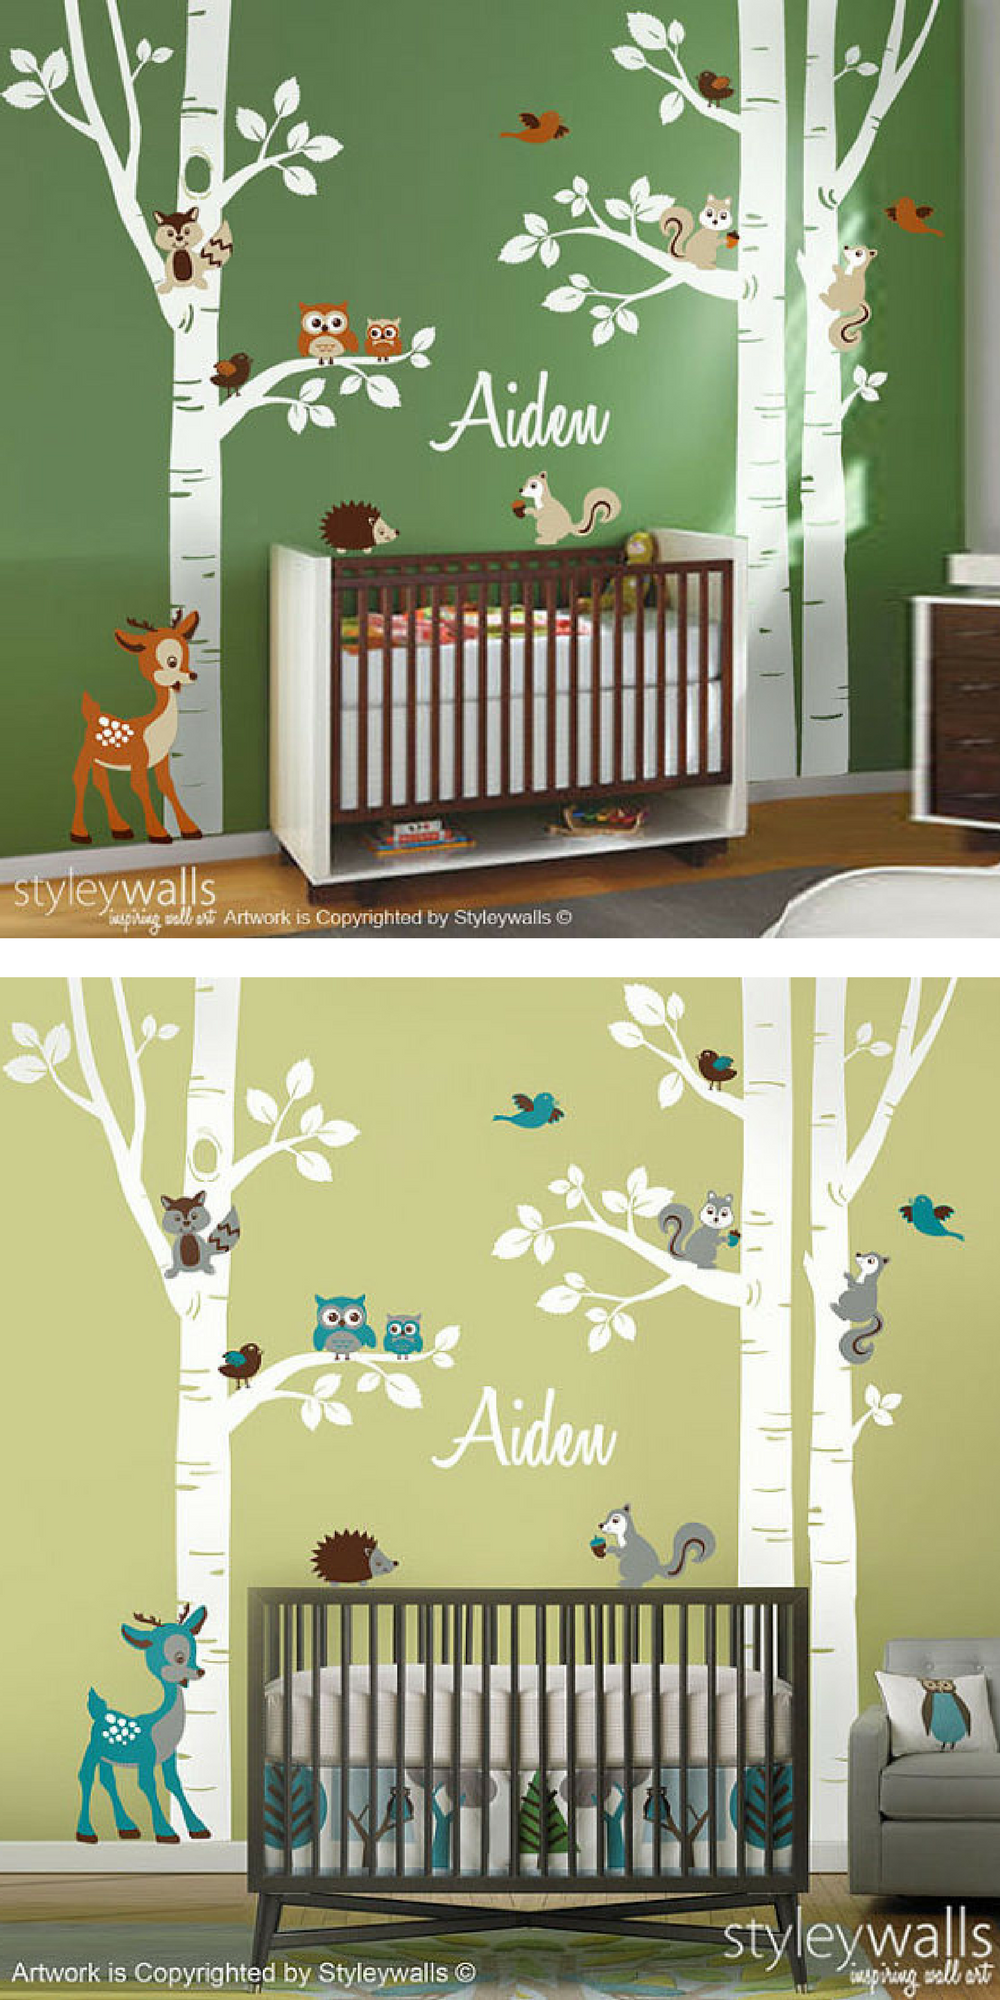 These Are Perfect For A Woodland Theme Kids Room Or Nursery Cute Wall Decal Of Birch Trees And Animals Can Be Made In Many Diffe Colors Too